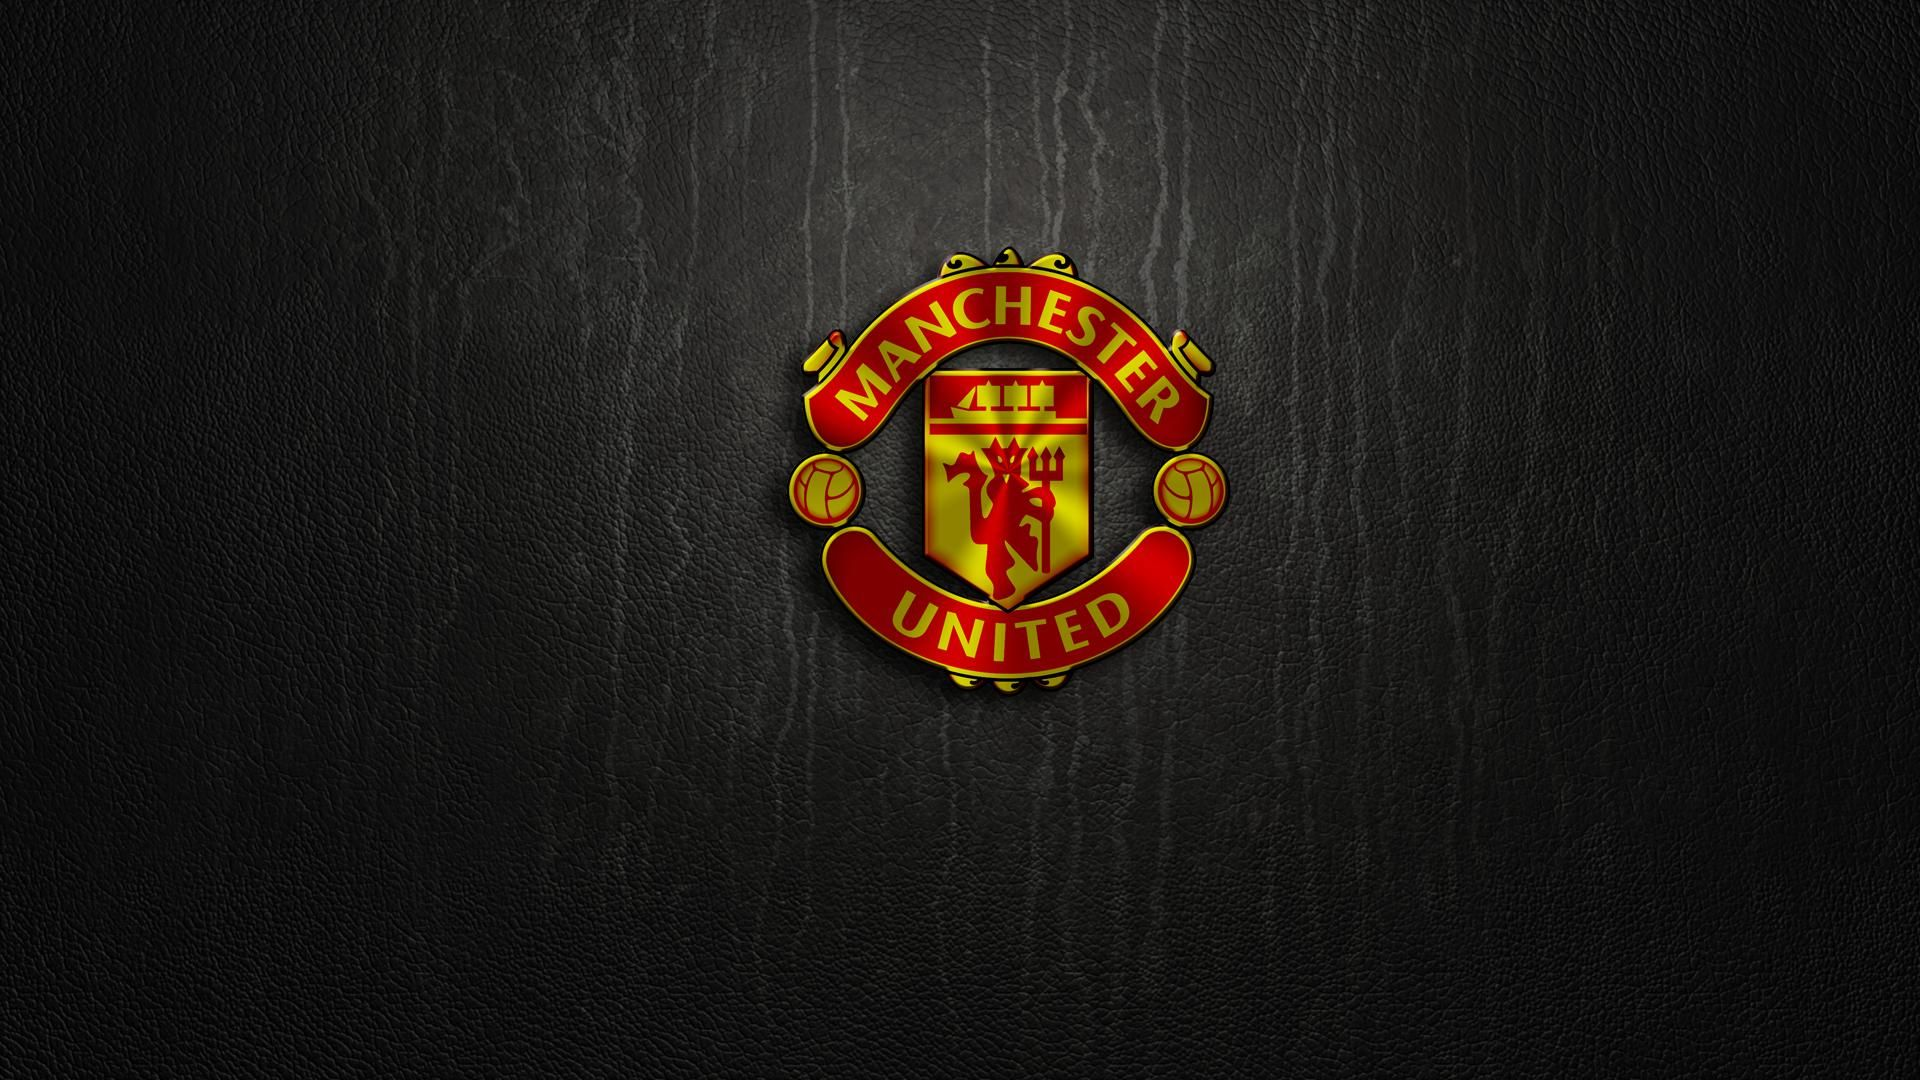 Pin By Chris On Mhfc Manchester United Wallpaper Manchester United Logo Manchester Logo